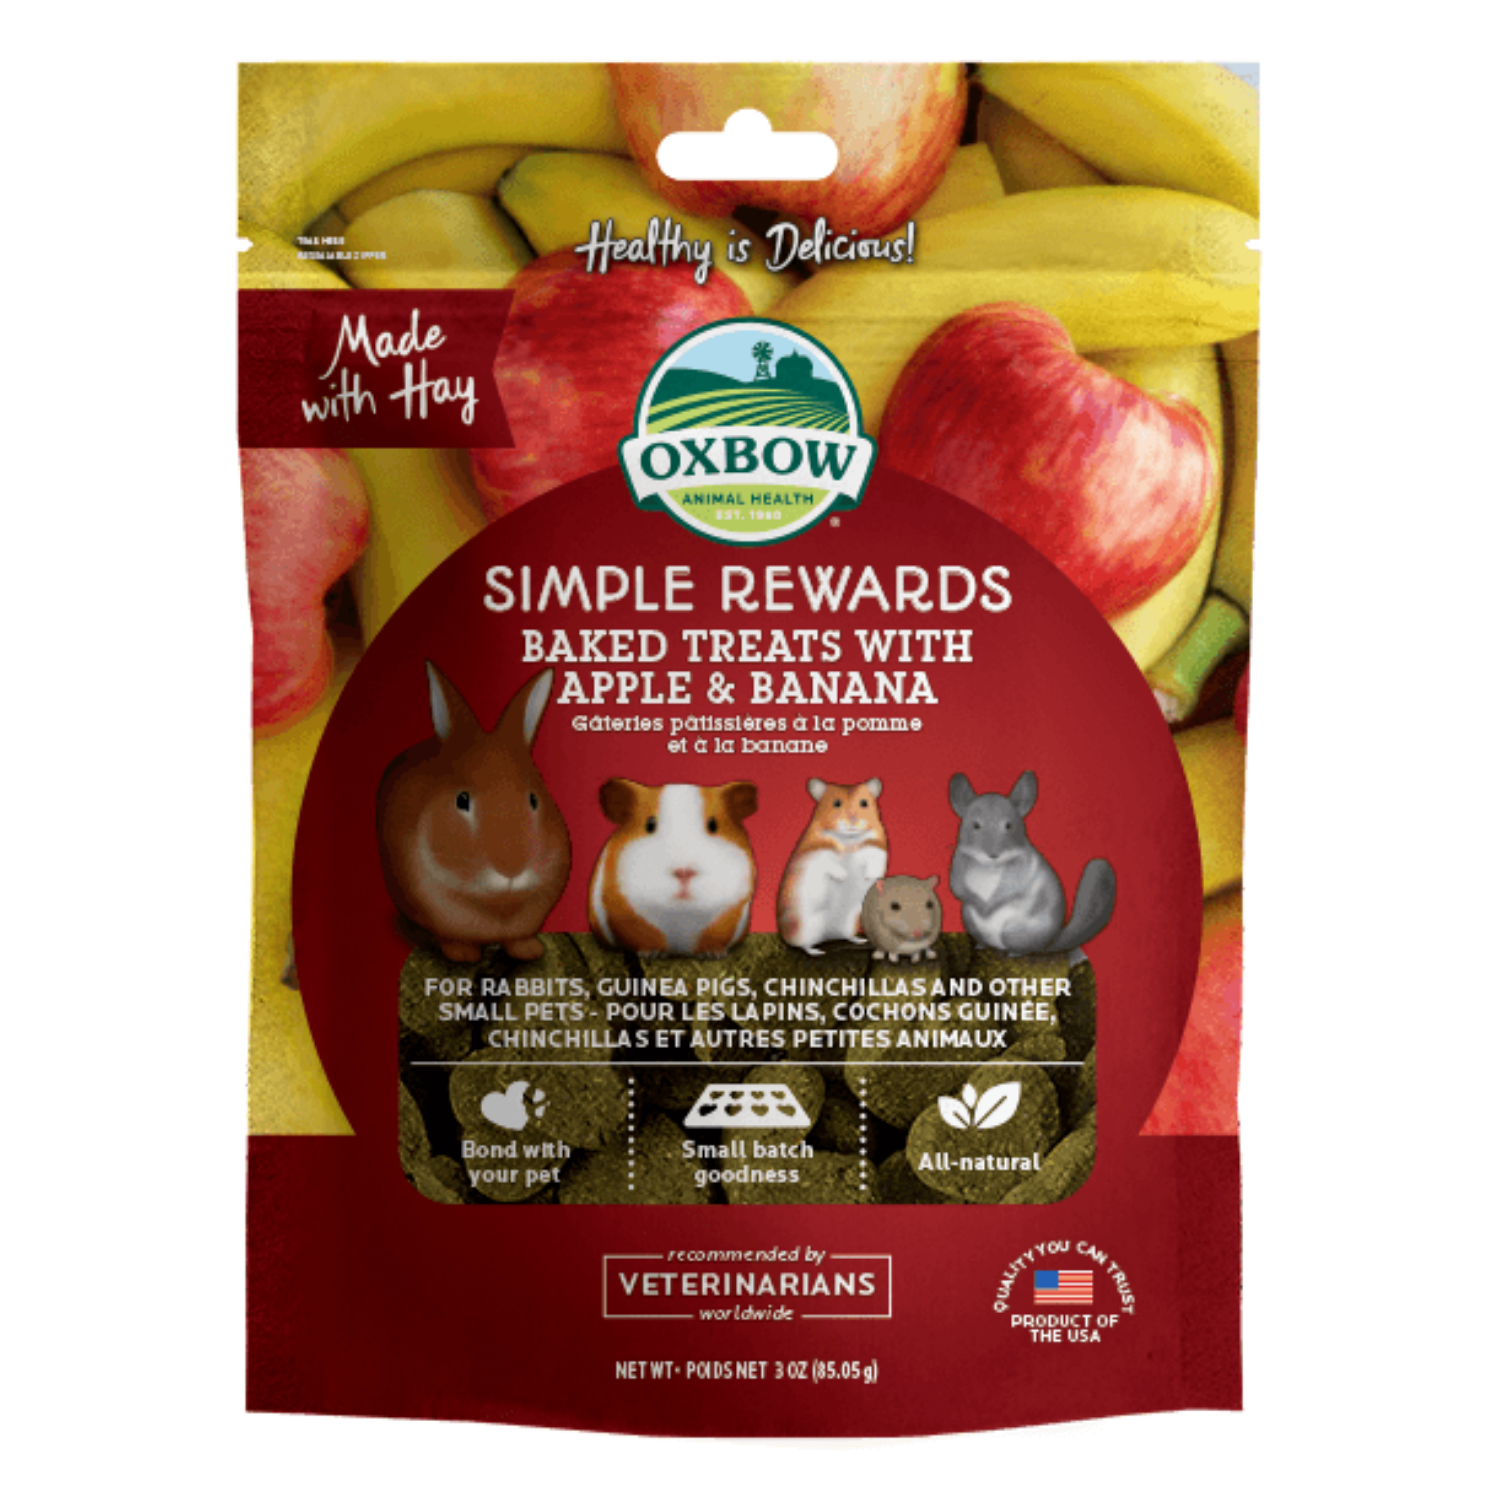 Oxbow Simple Rewards Baked Treats with (Apple and Banana) - 85g